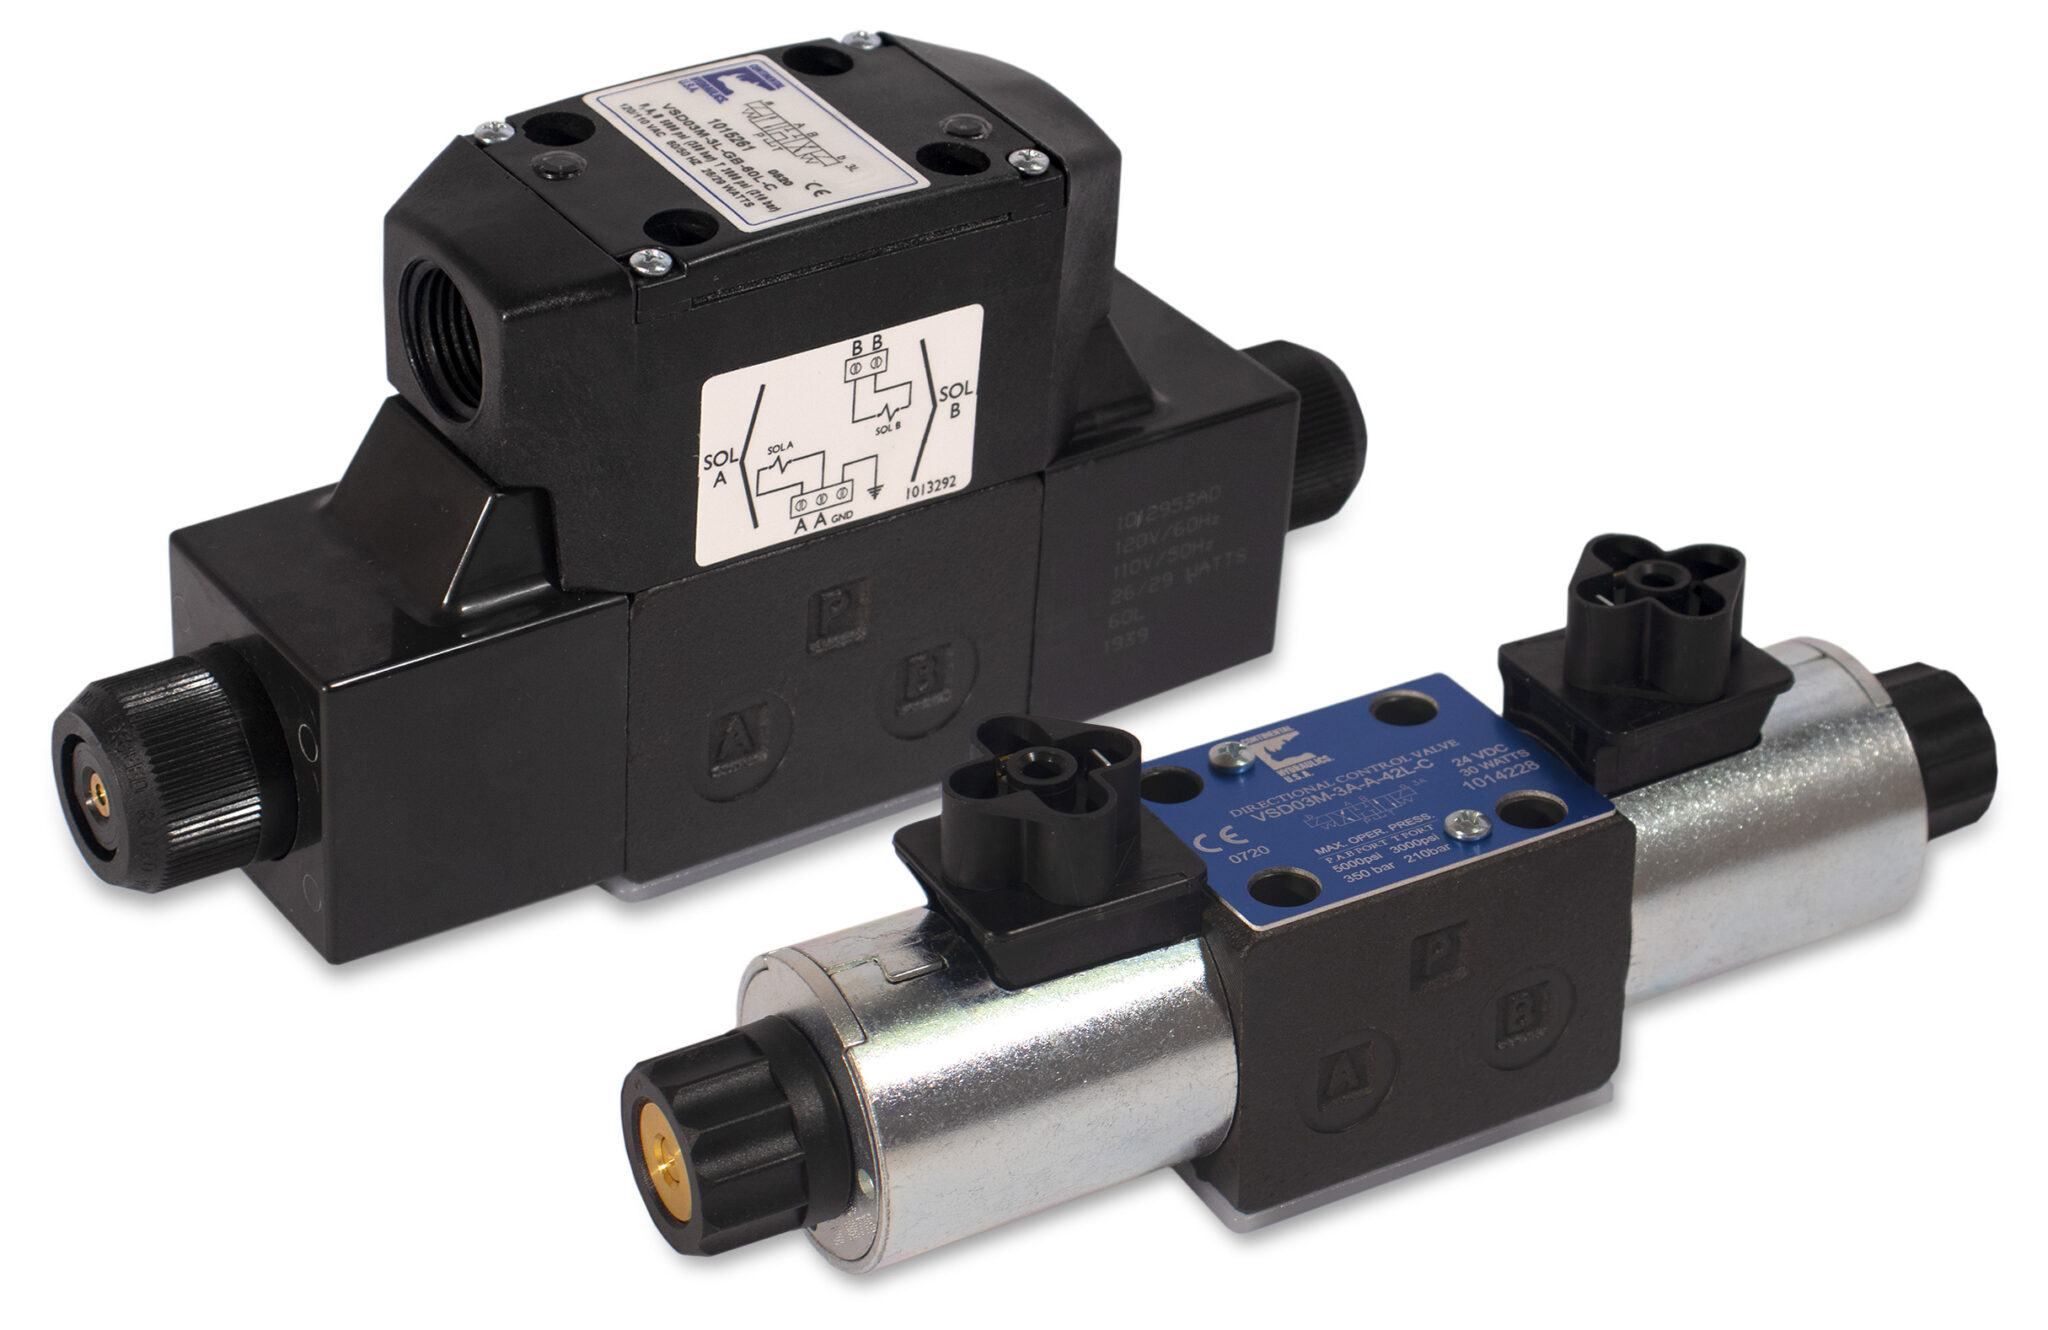 VSD03M direct operated solenoid valve products; white background